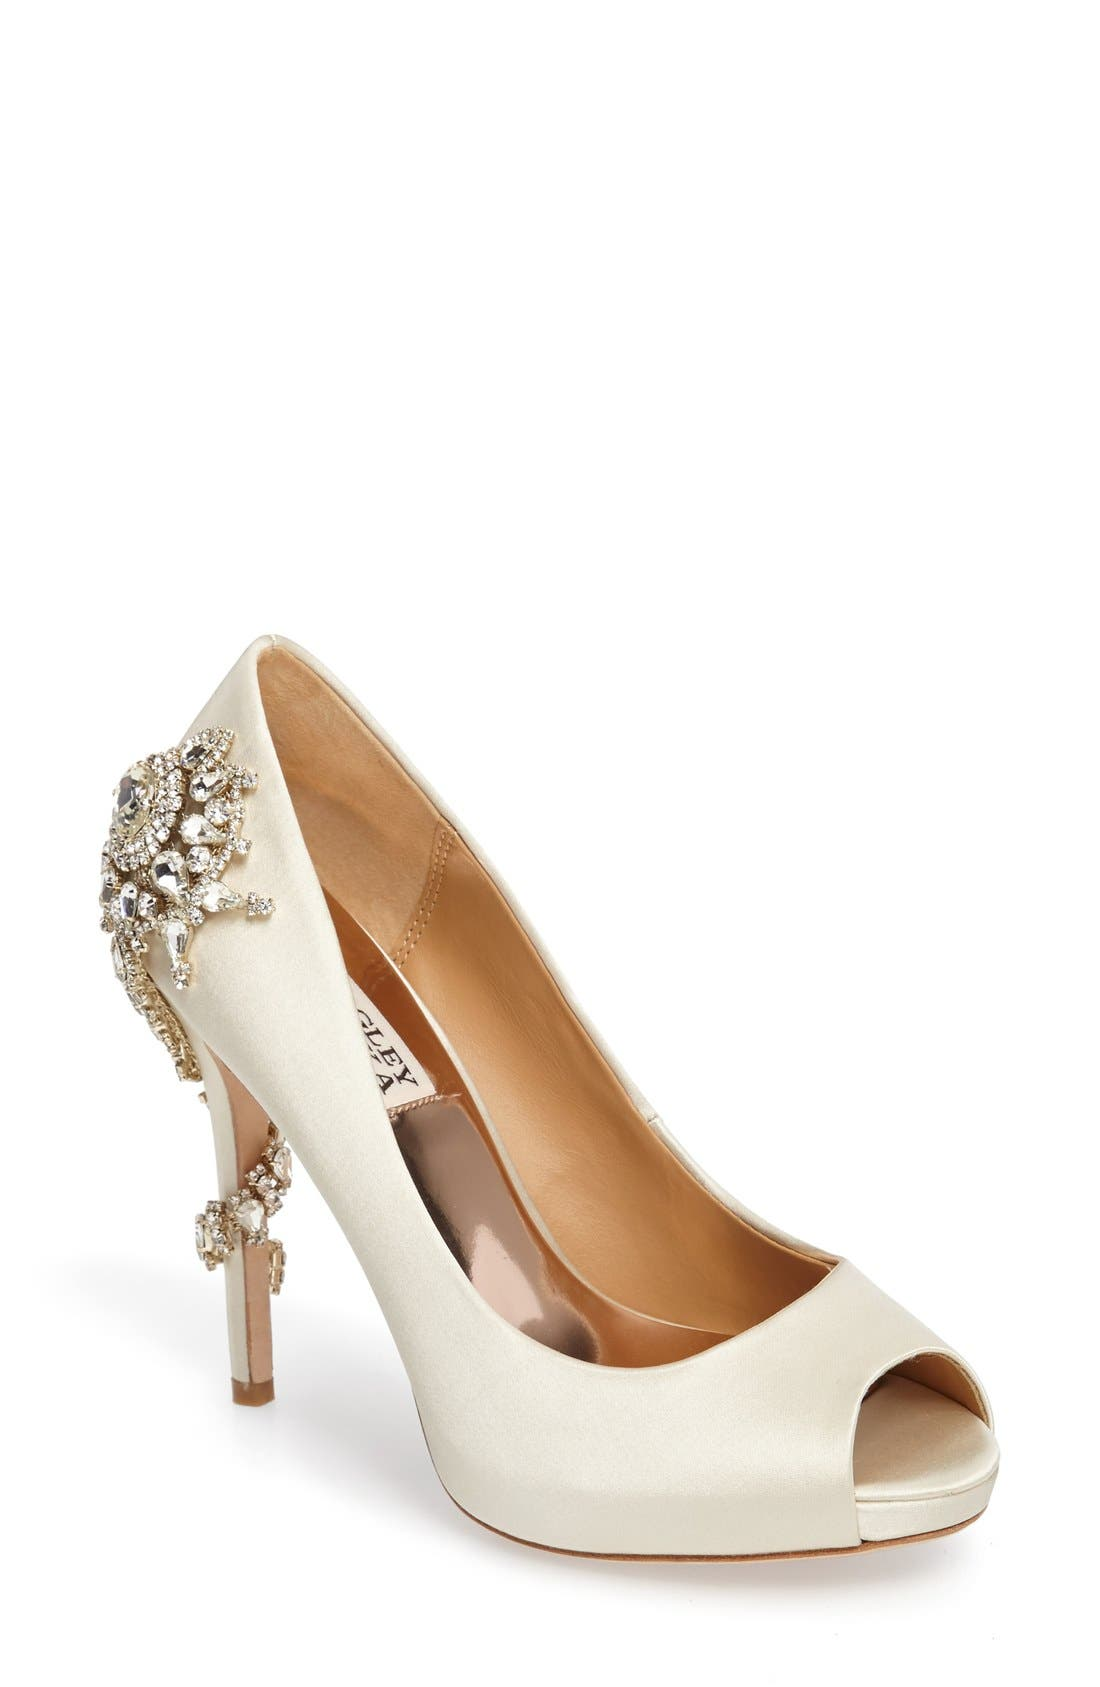 Badgley Mischka 'Royal' Crystal Embellished Peeptoe Pump (Women)